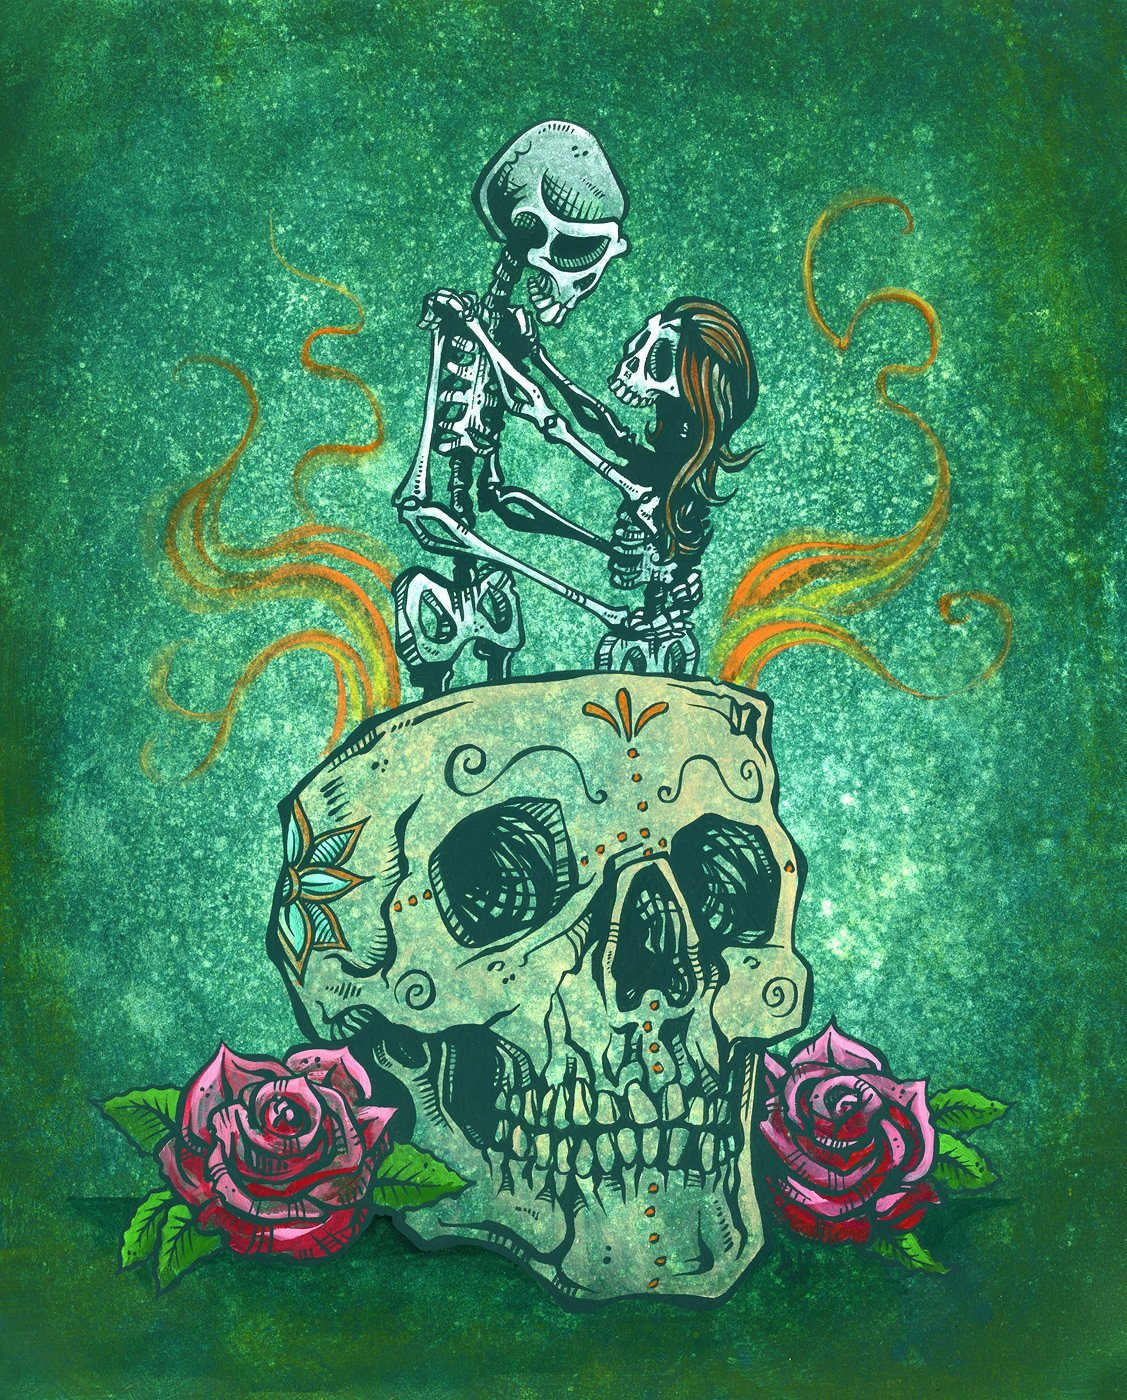 Amor Eterno by Day of the Dead Artist David Lozeau, Day of the Dead Art, Dia de los Muertos Art, Dia de los Muertos Artist